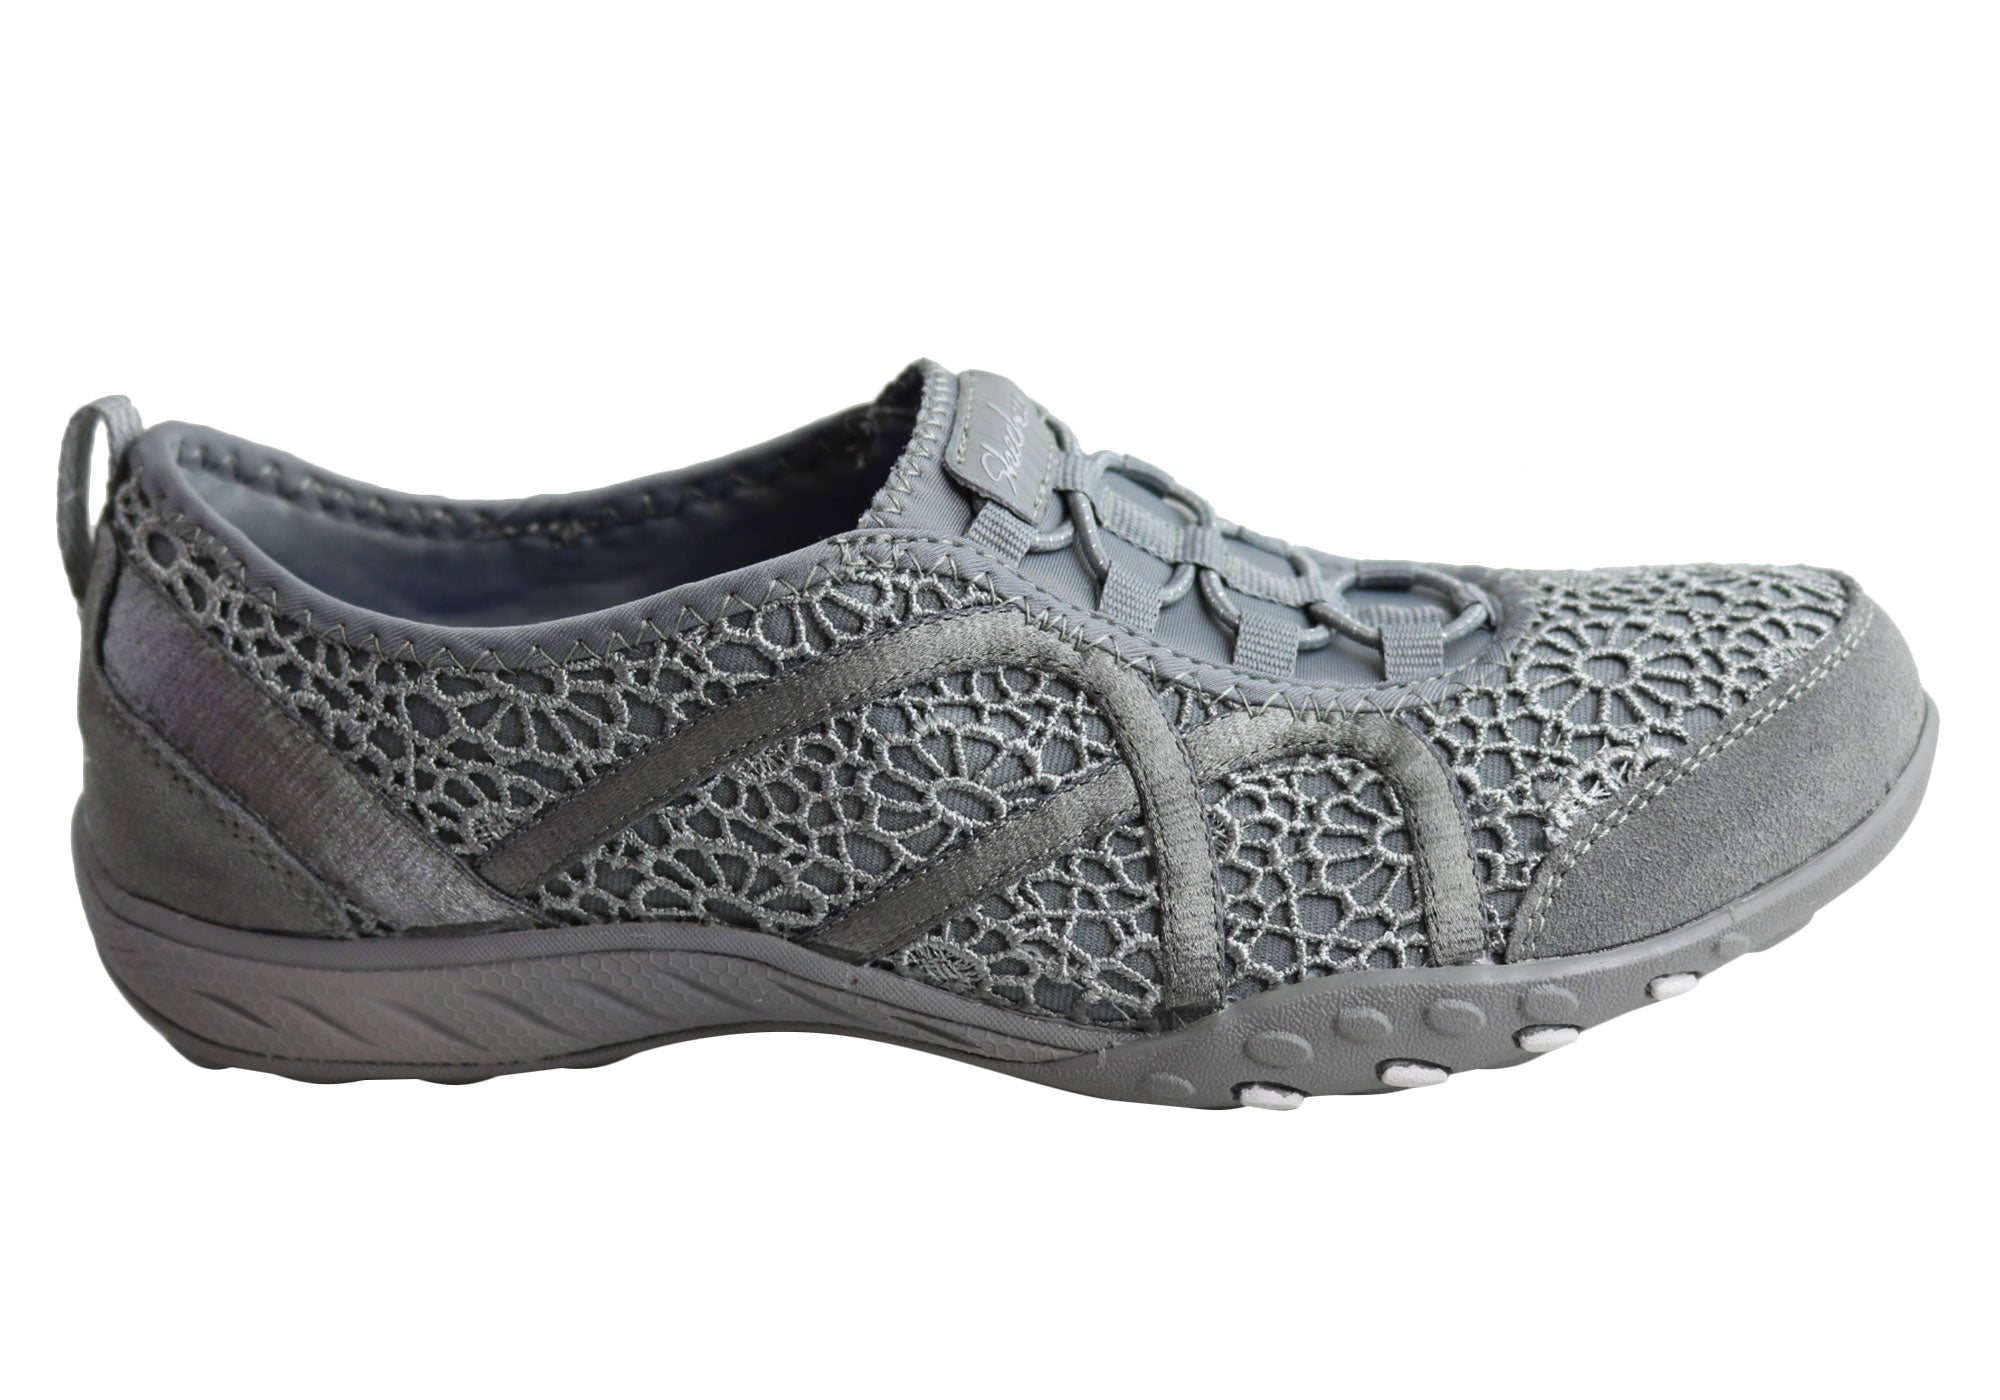 6e2bedf9073c Skechers 22527 Breathe Easy Meadows Grey Womens Shoes Casual ...